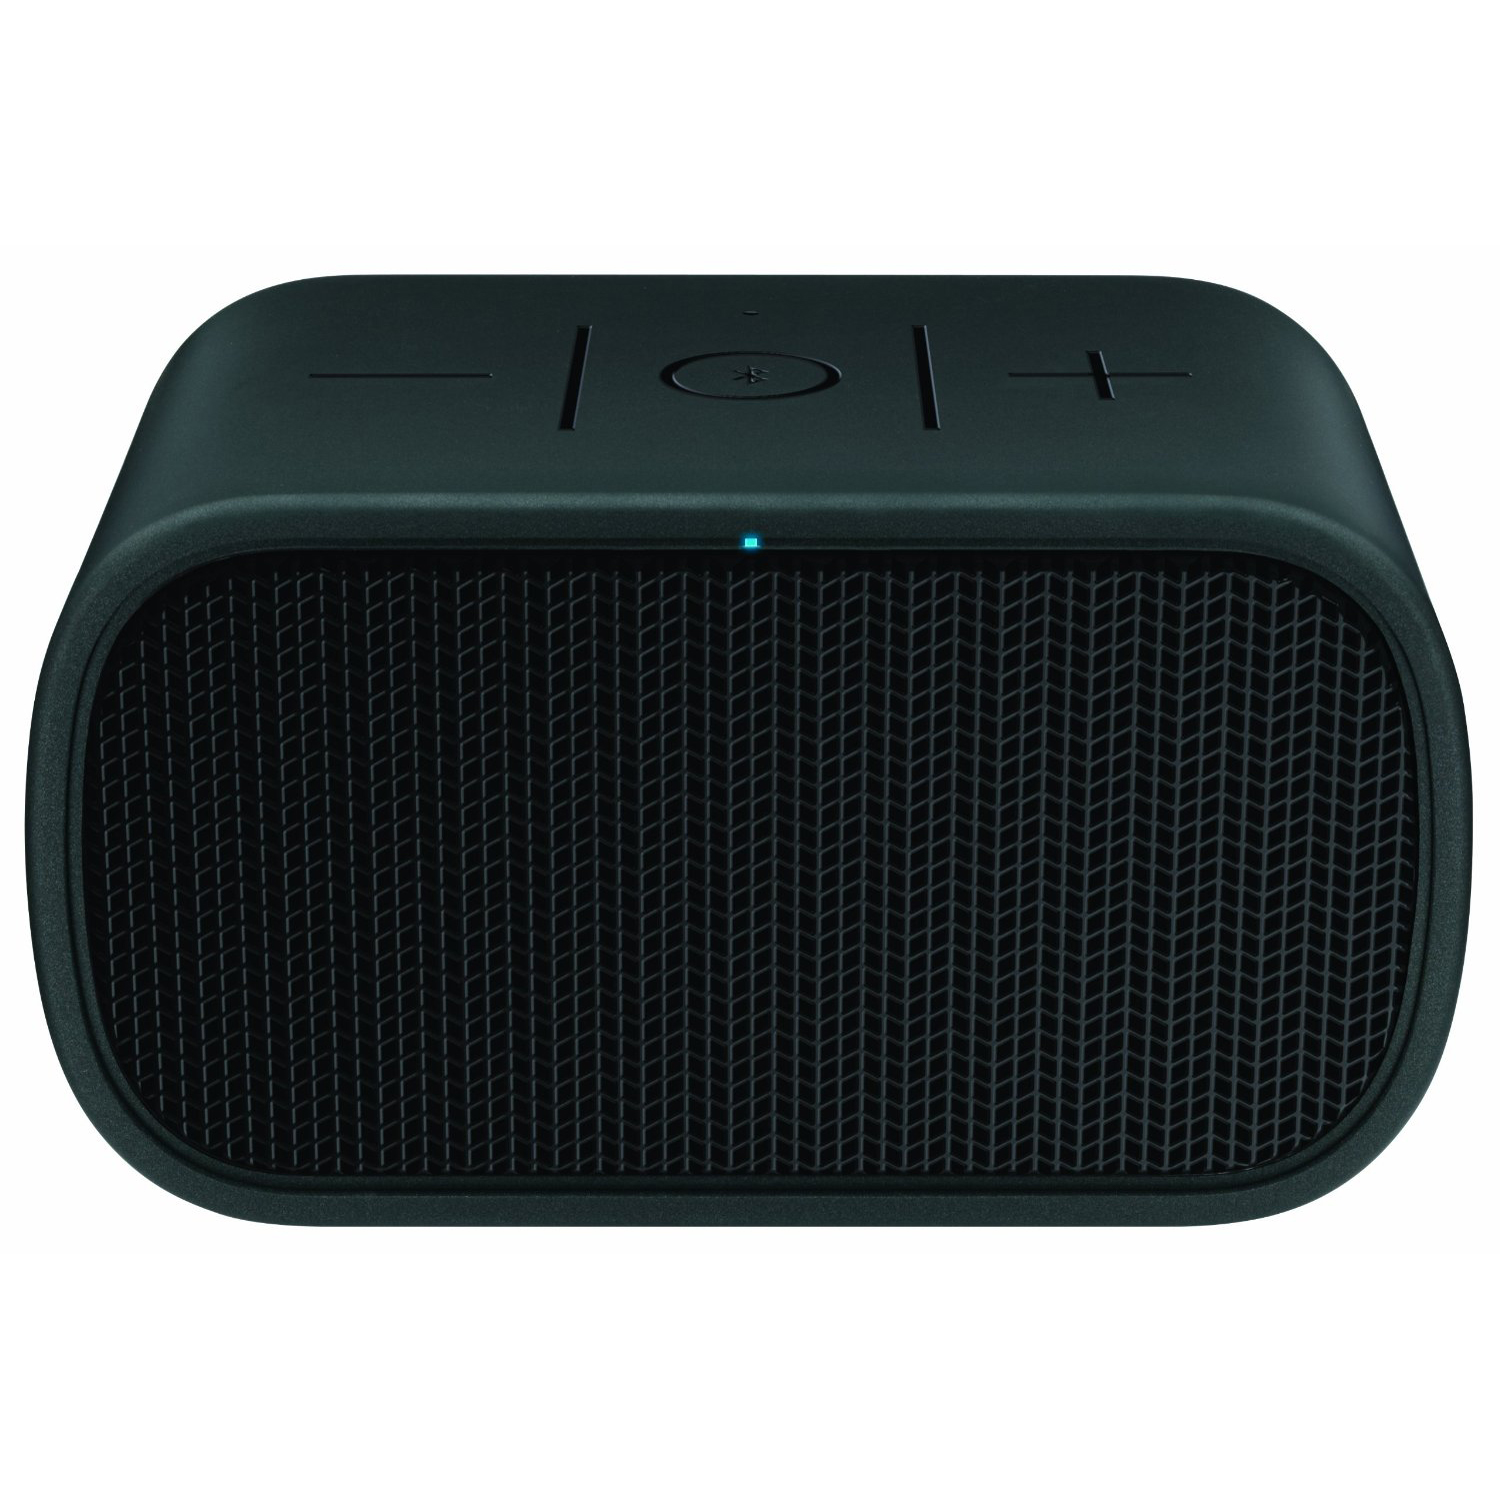 Logitech Ultimate Ears Mini Boom Wireless Speaker/Speakerphone